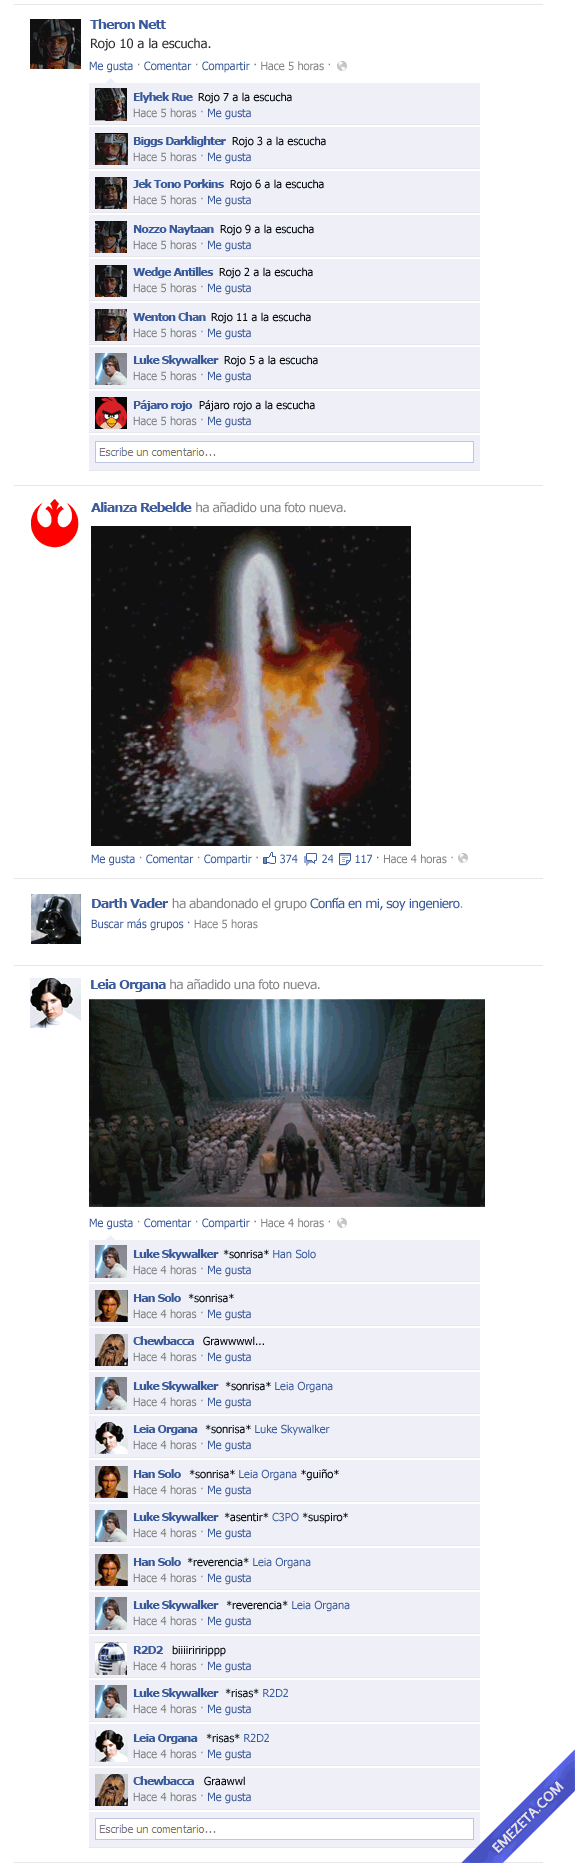 El Facebook de Star Wars: Episodio IV (3)